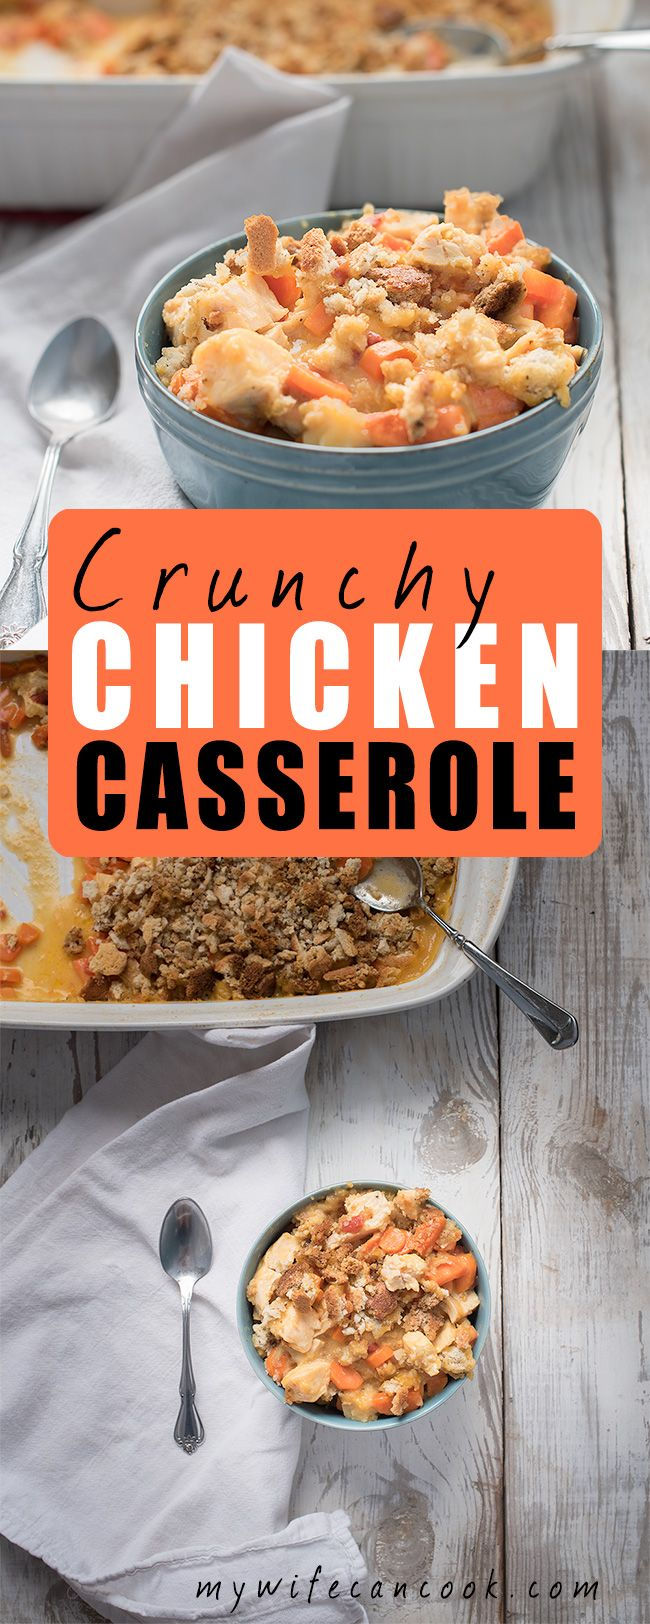 If you're looking for the perfect fall casserole you'll love the easy crunchy chicken casserole recipe. It's a great fall/autumn recipe which features chicken, carrots, a cheesy sauce and breadcrumbs. Fall casseroles are perfect for the the busy back-to-school season when you don't have lots of time and you need easy family meals. This simple chicken casserole is a family favorite dish. So fulfill your casserole craving and enjoy an easy fall recipe tonight. And leftovers tomorrow!